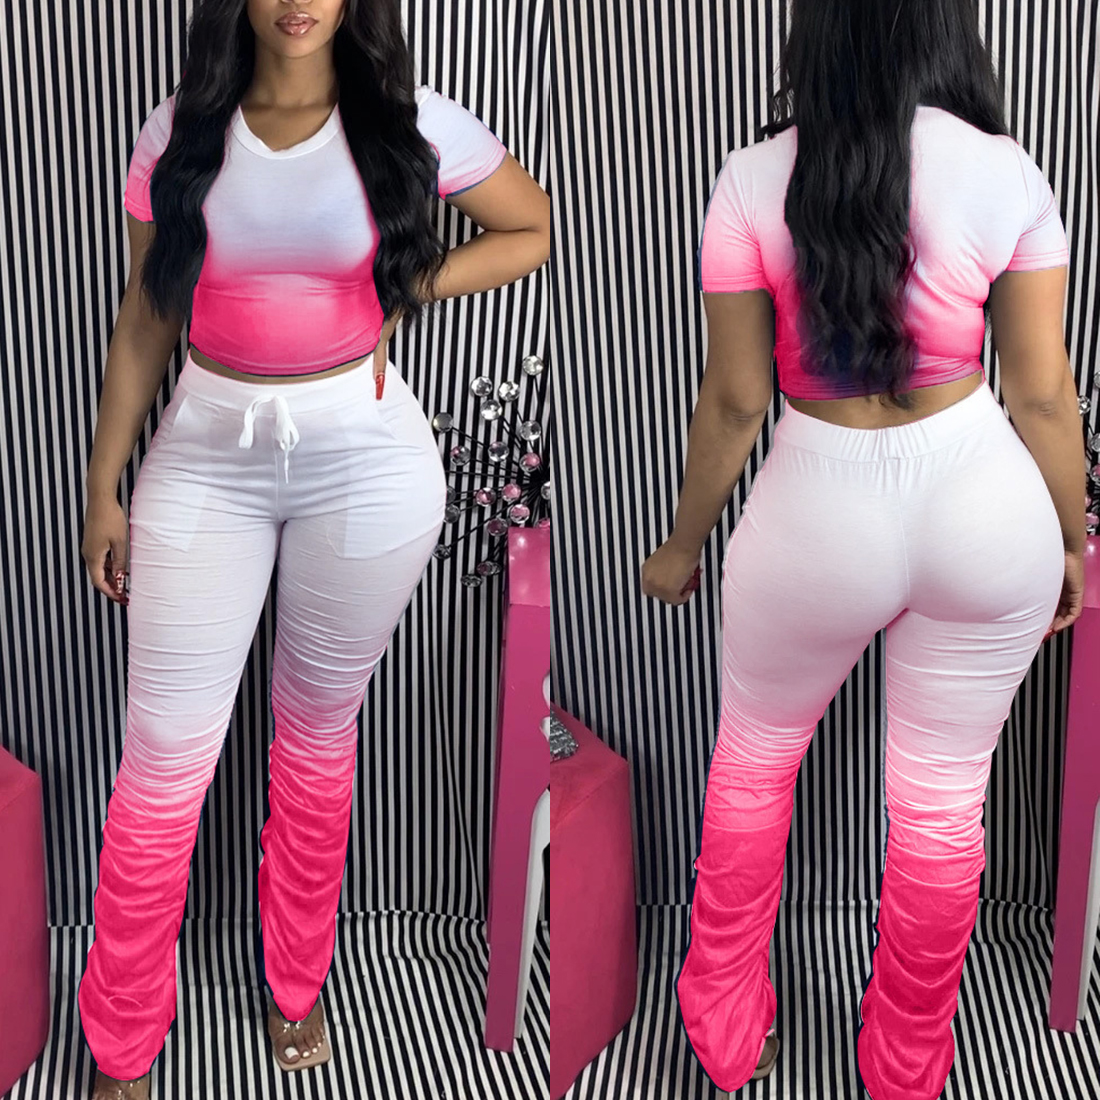 Jodimitty Women Tracksuits Two Pieces Set Gradient Short Sleeve Top Flared Pants 2 Pieces Set Pleated Pants Sports Suit Outfit 4